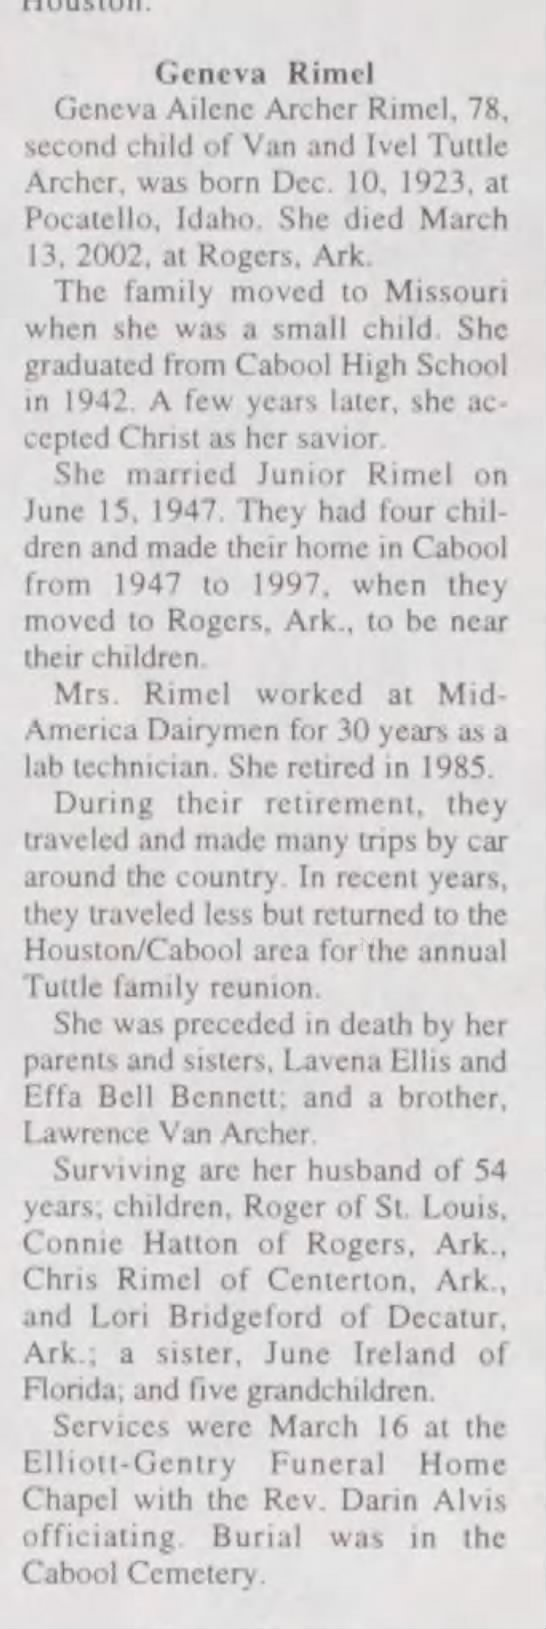 The Houston (Mo.) Herald, 21 Mar 2002 - Geneva Rimel Geneva Ailcne Archer Rimel, 78,...